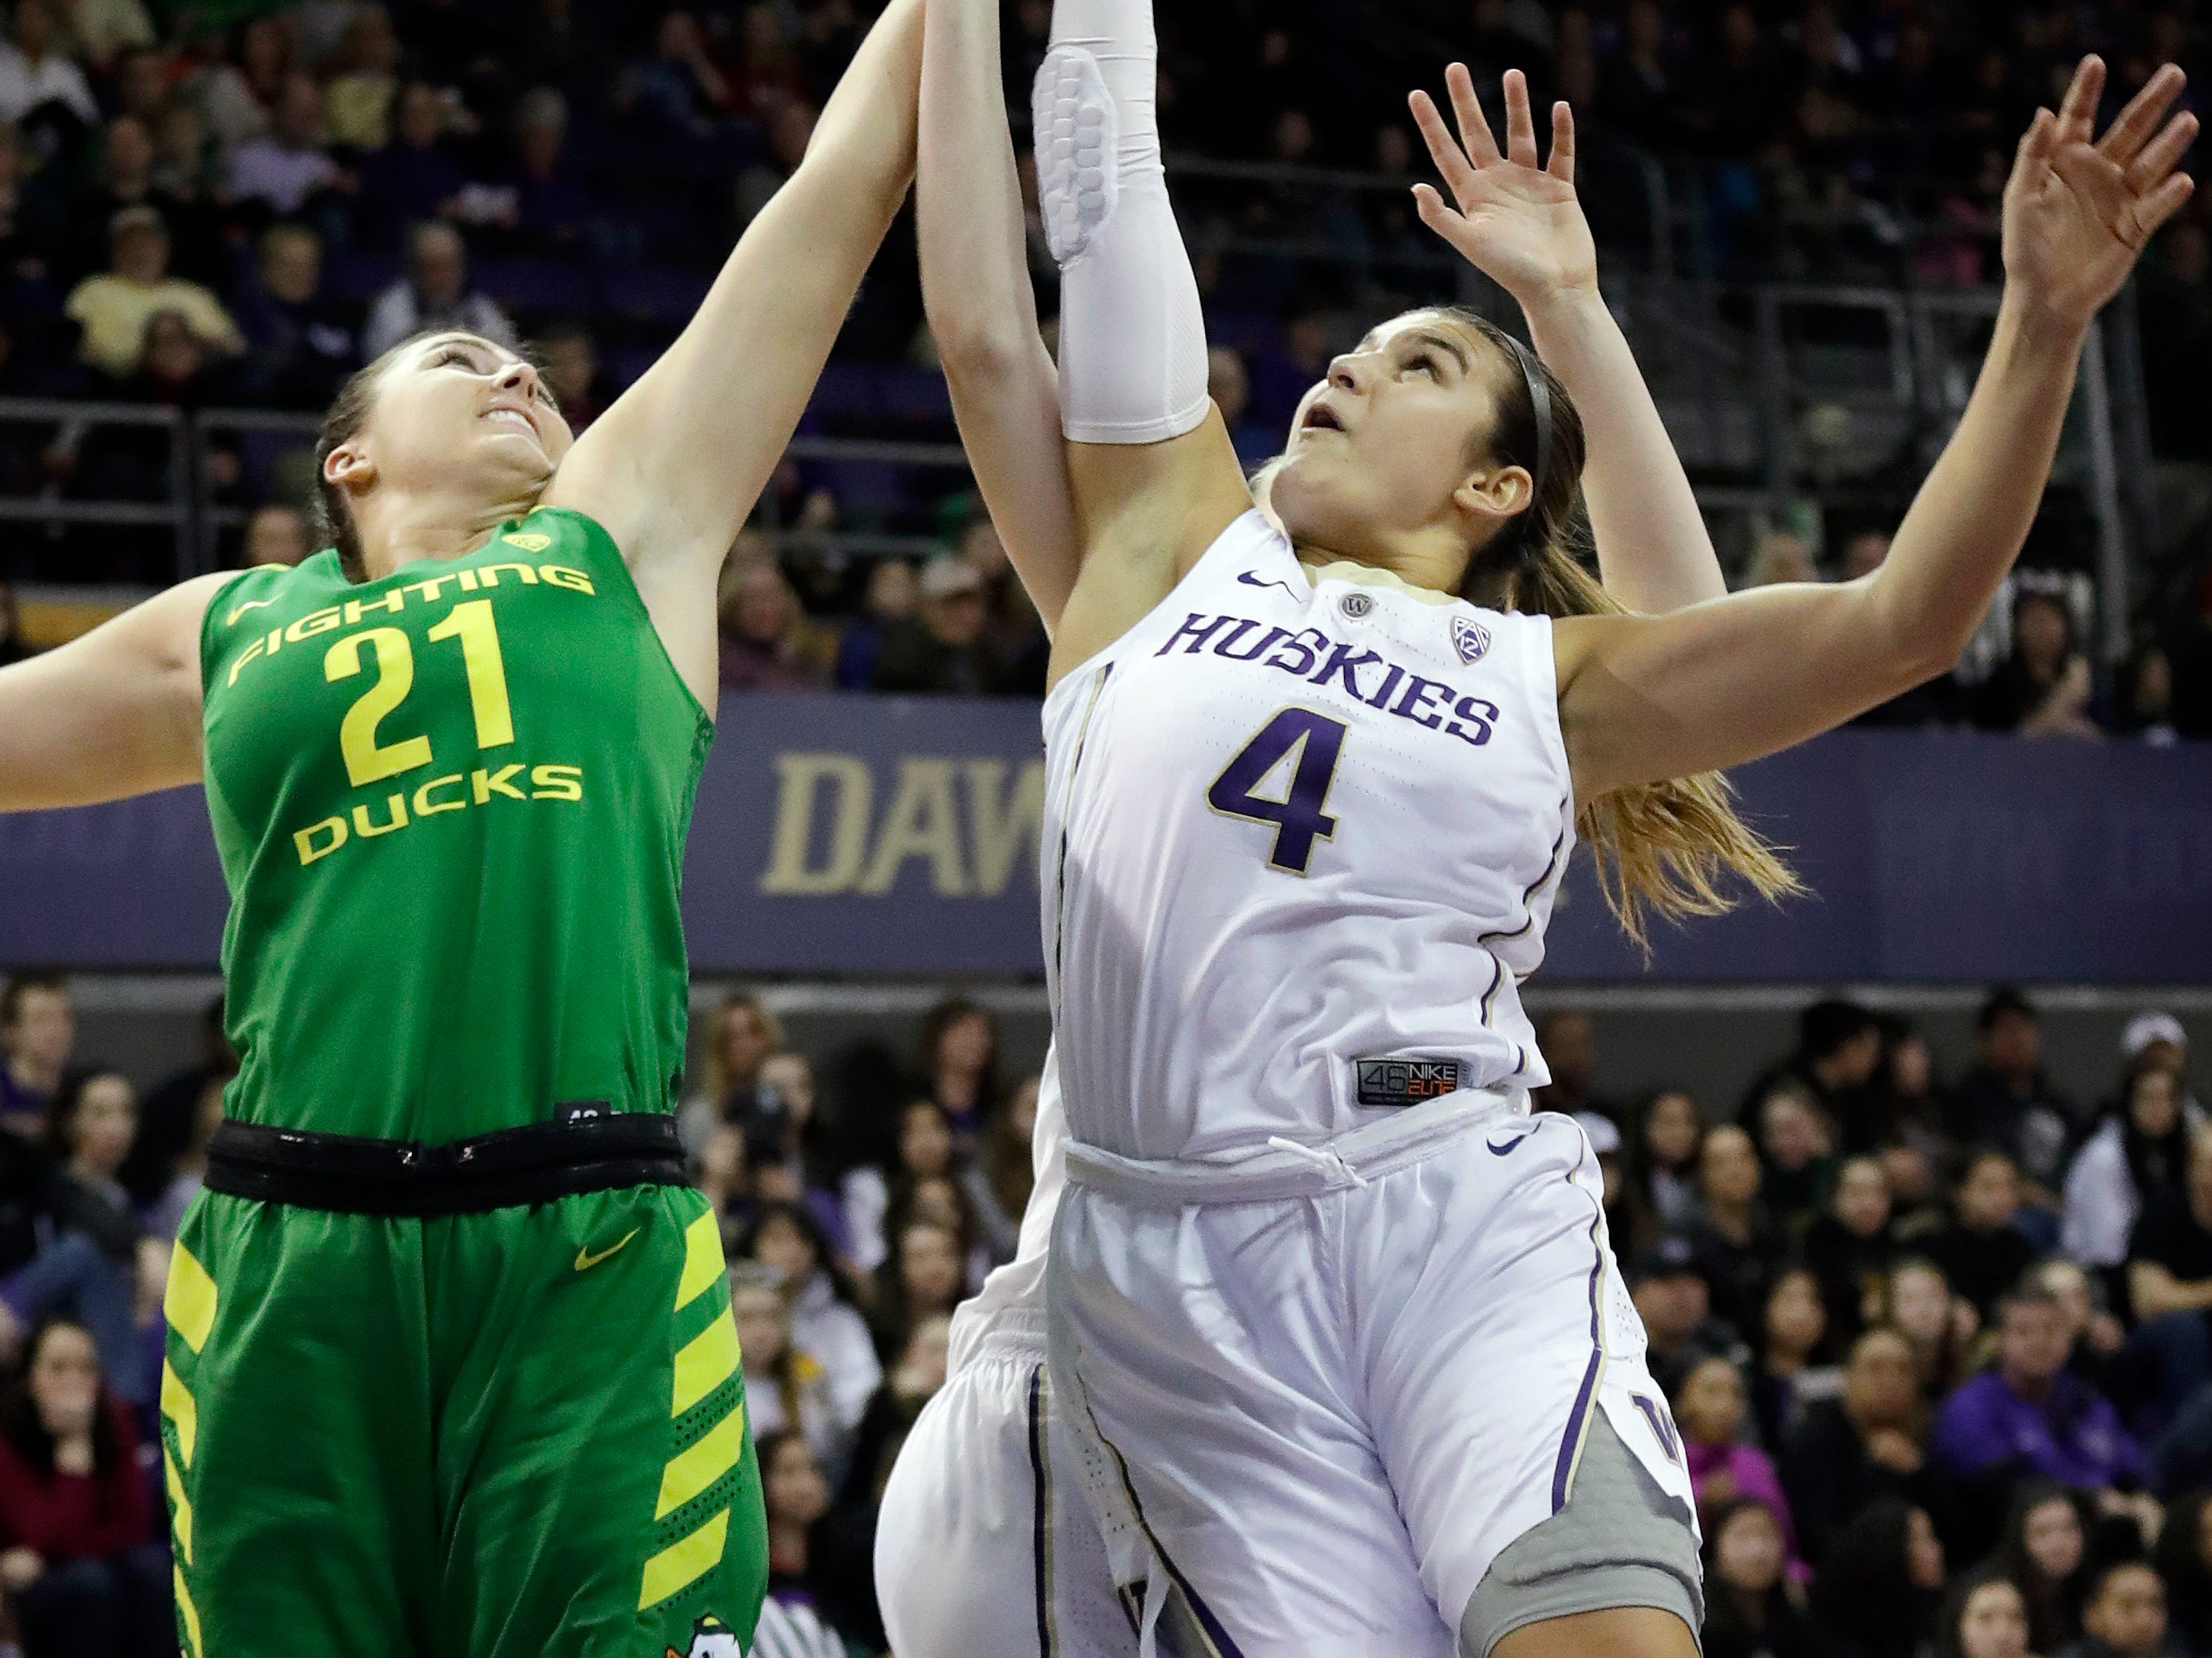 Oregon's Morgan Yaeger (21) and Washington's Amber Melgoza (4) reach for a rebound in the first half of an NCAA college basketball game Sunday, Jan. 27, 2019, in Seattle.